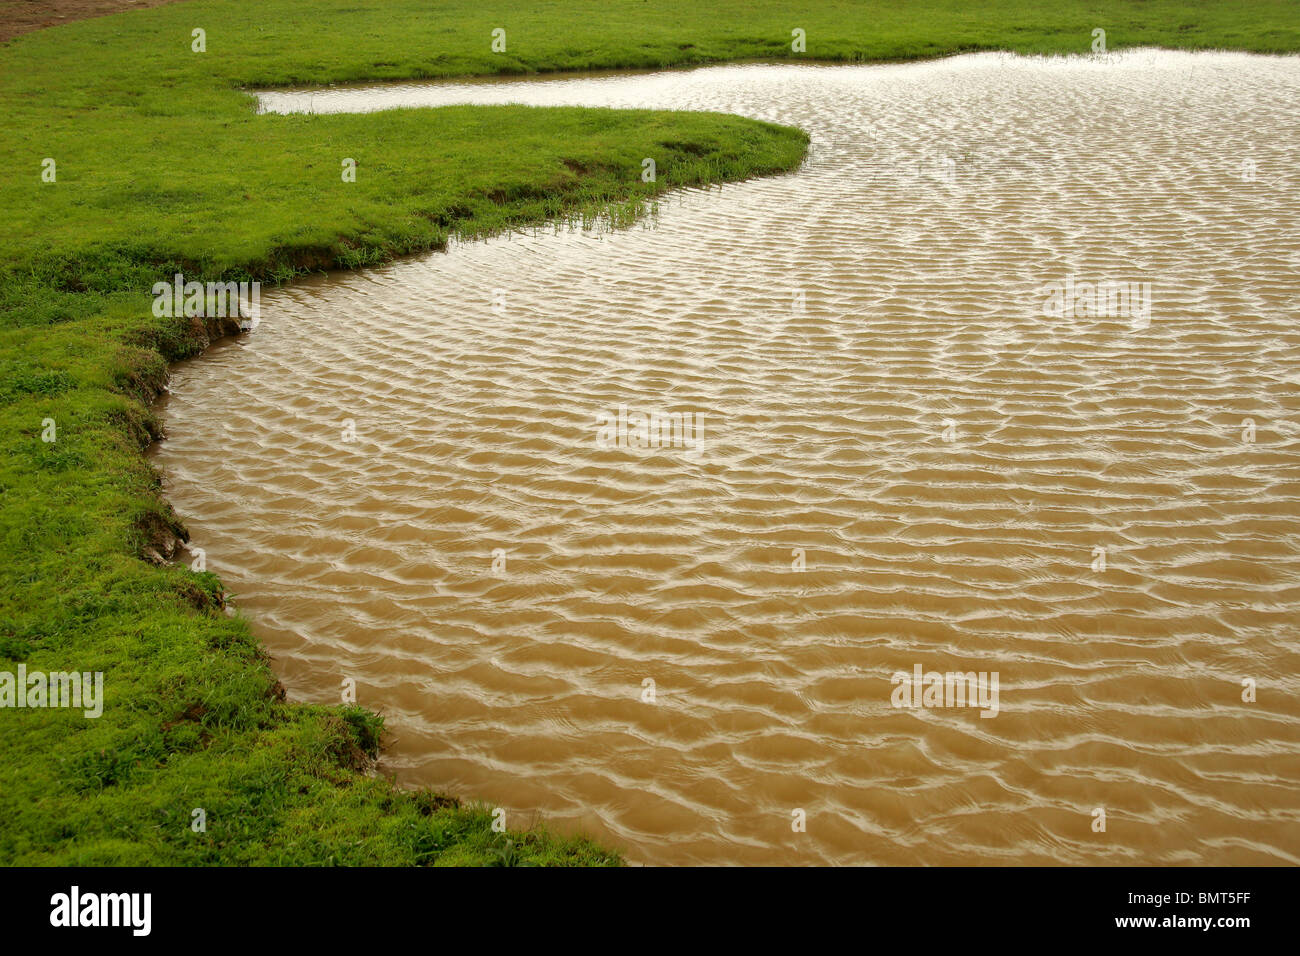 Panchgani photos around panchgani images panchgani temple photos - Abstract In Form Of Natural Pond With Thick Ripples Fresh Green Grass All Around Table Land